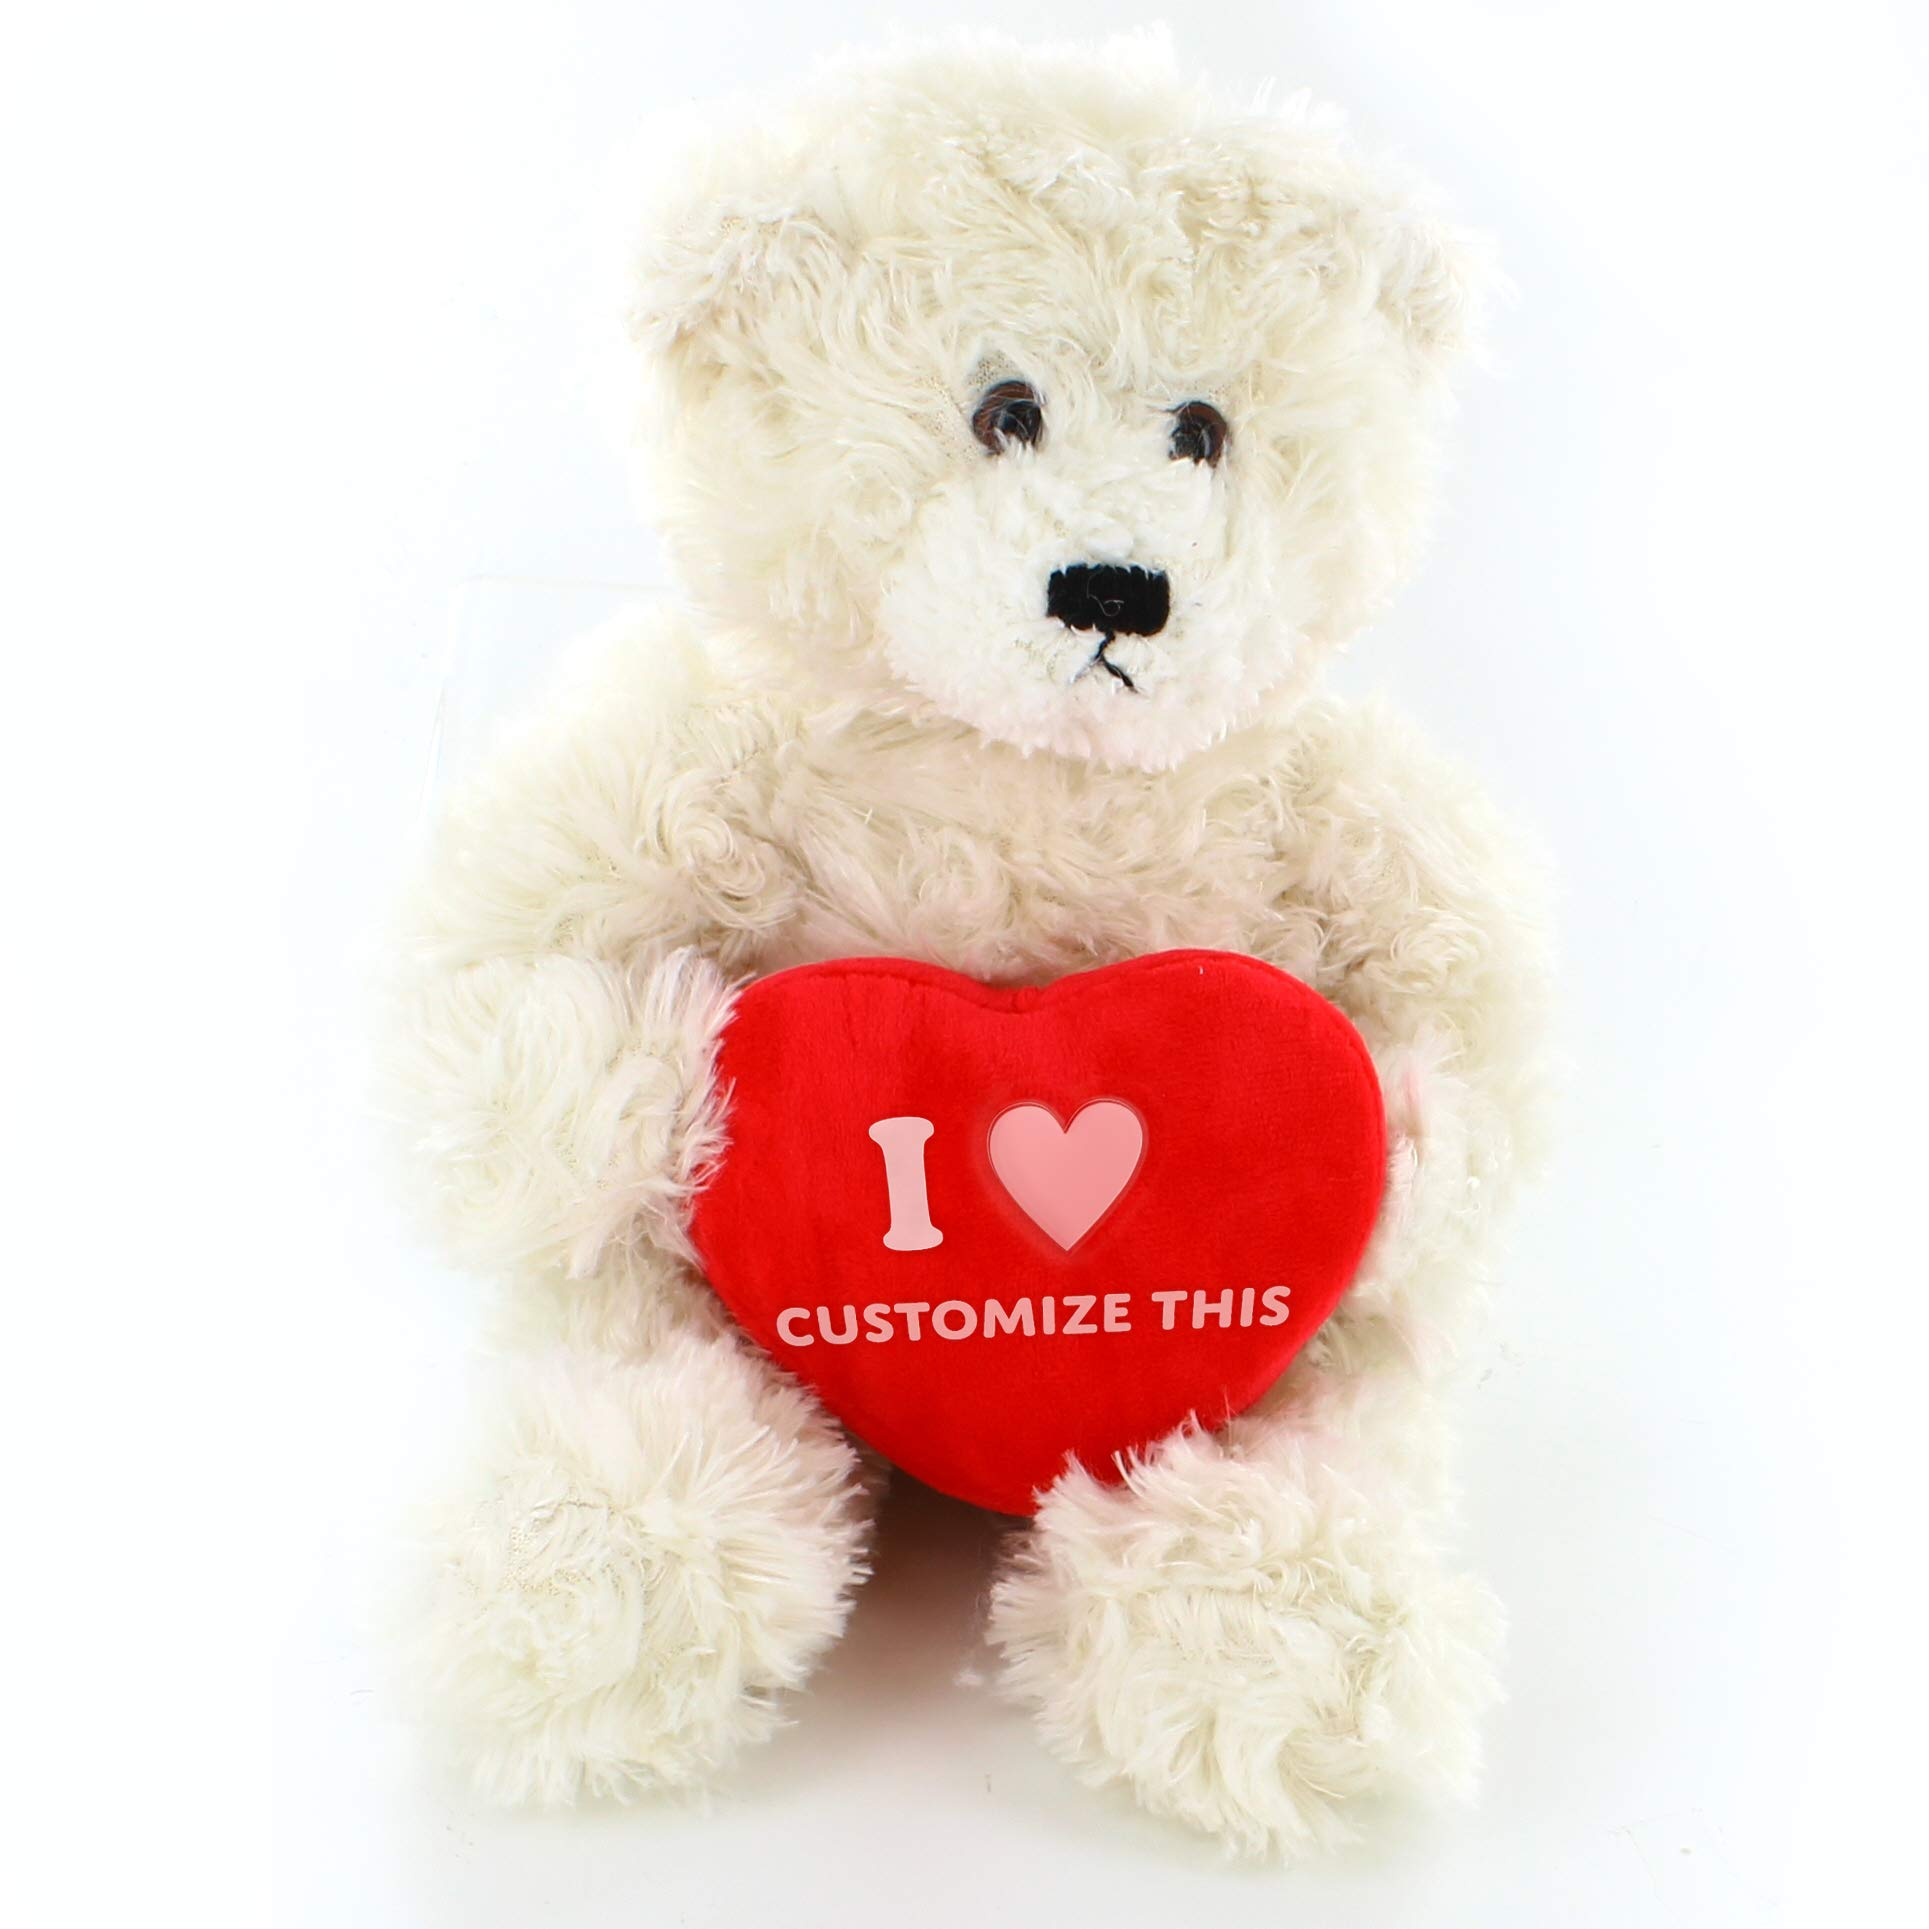 Plushland Brandon Bear 12 Inches with Custom Heart, Cream Teddy Bear Stuffed Animal - Valentine Day Personalized Gift for Girls, Boys and Your Loved Ones